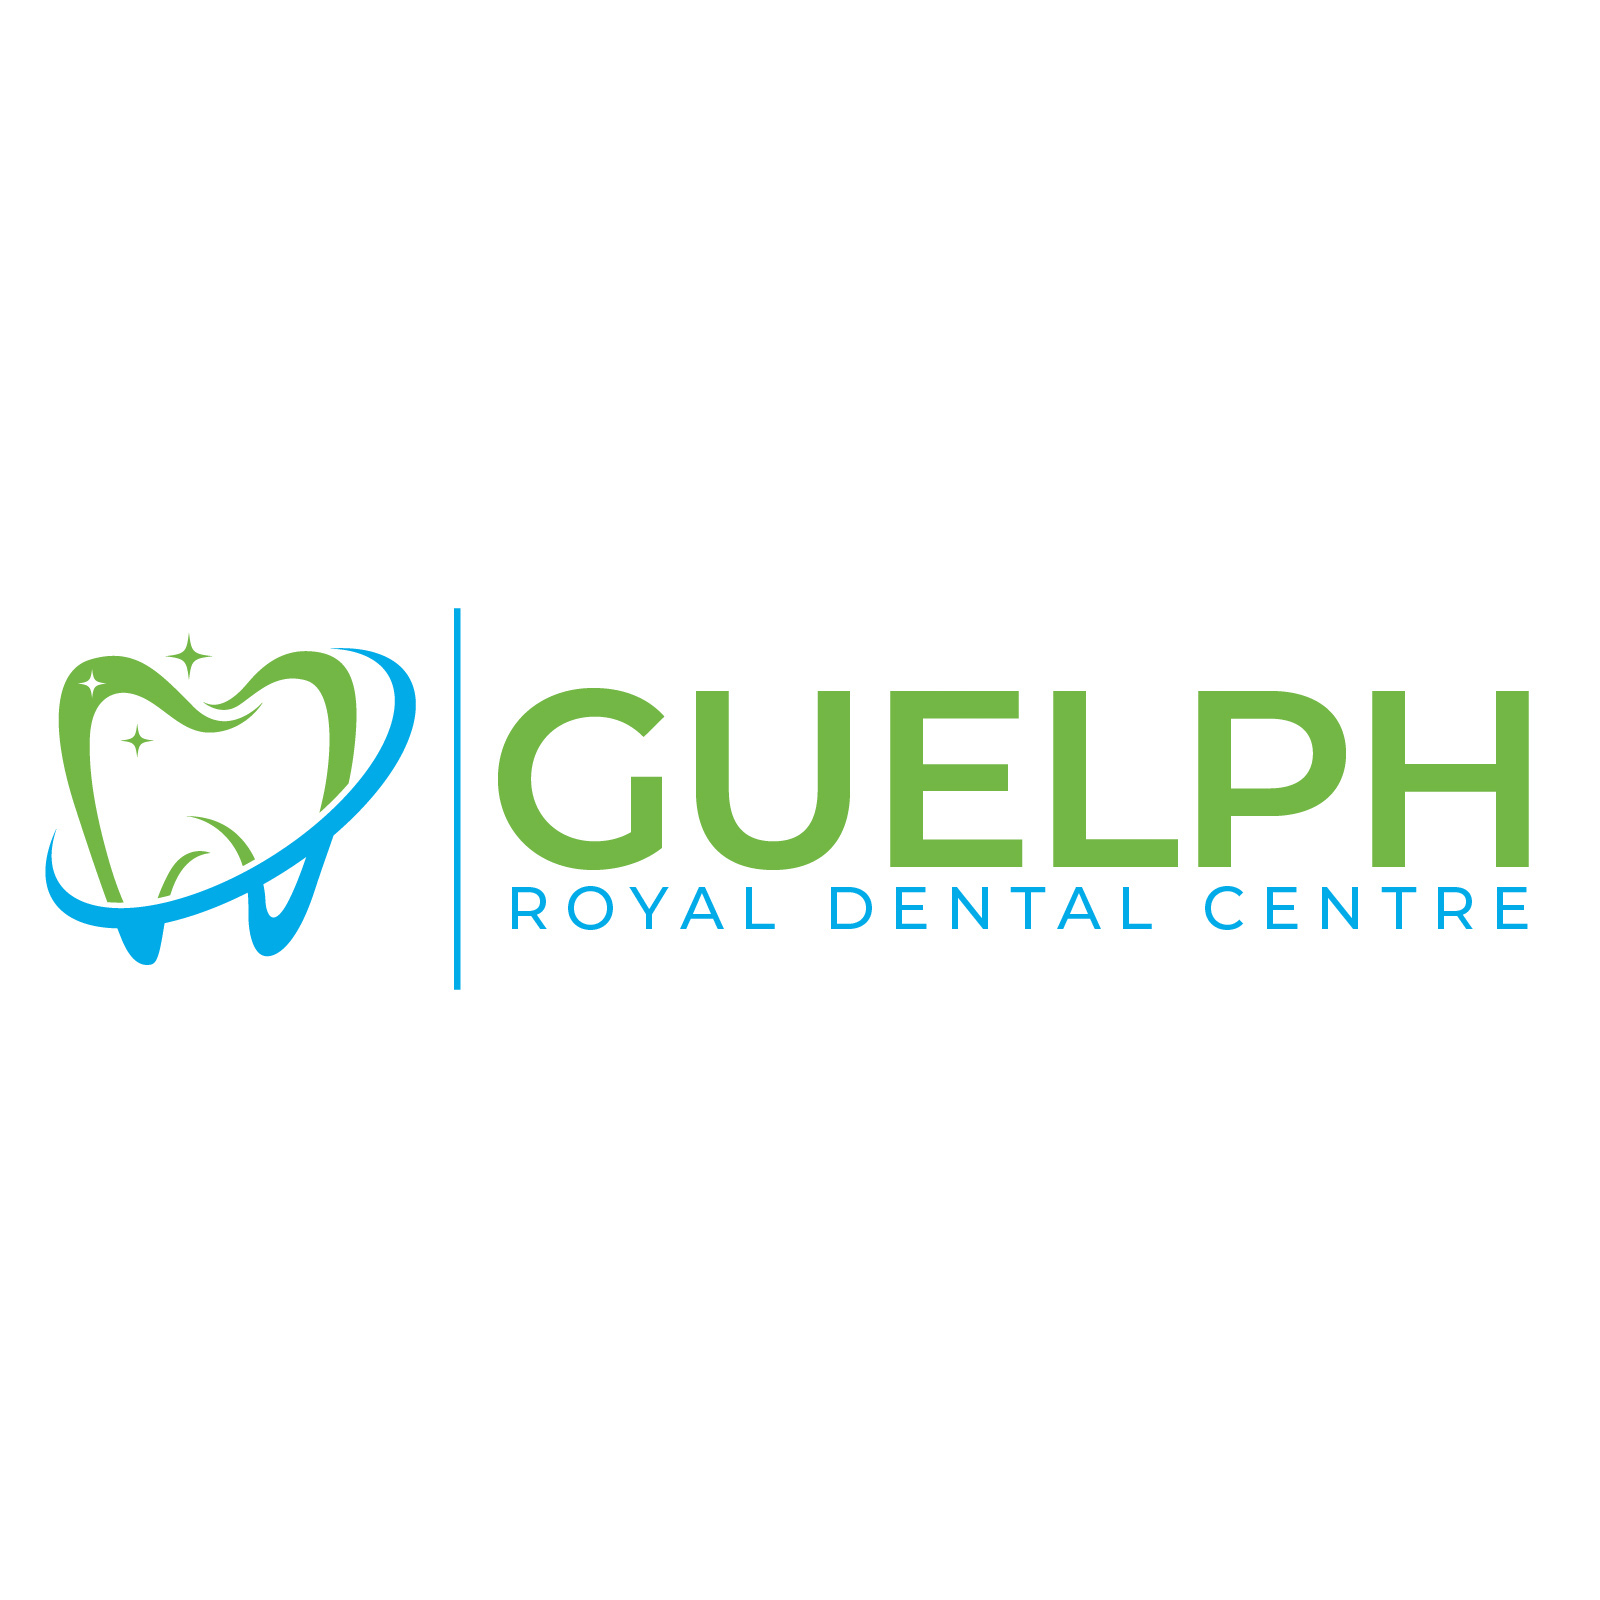 Guelph Royal Dental Centre